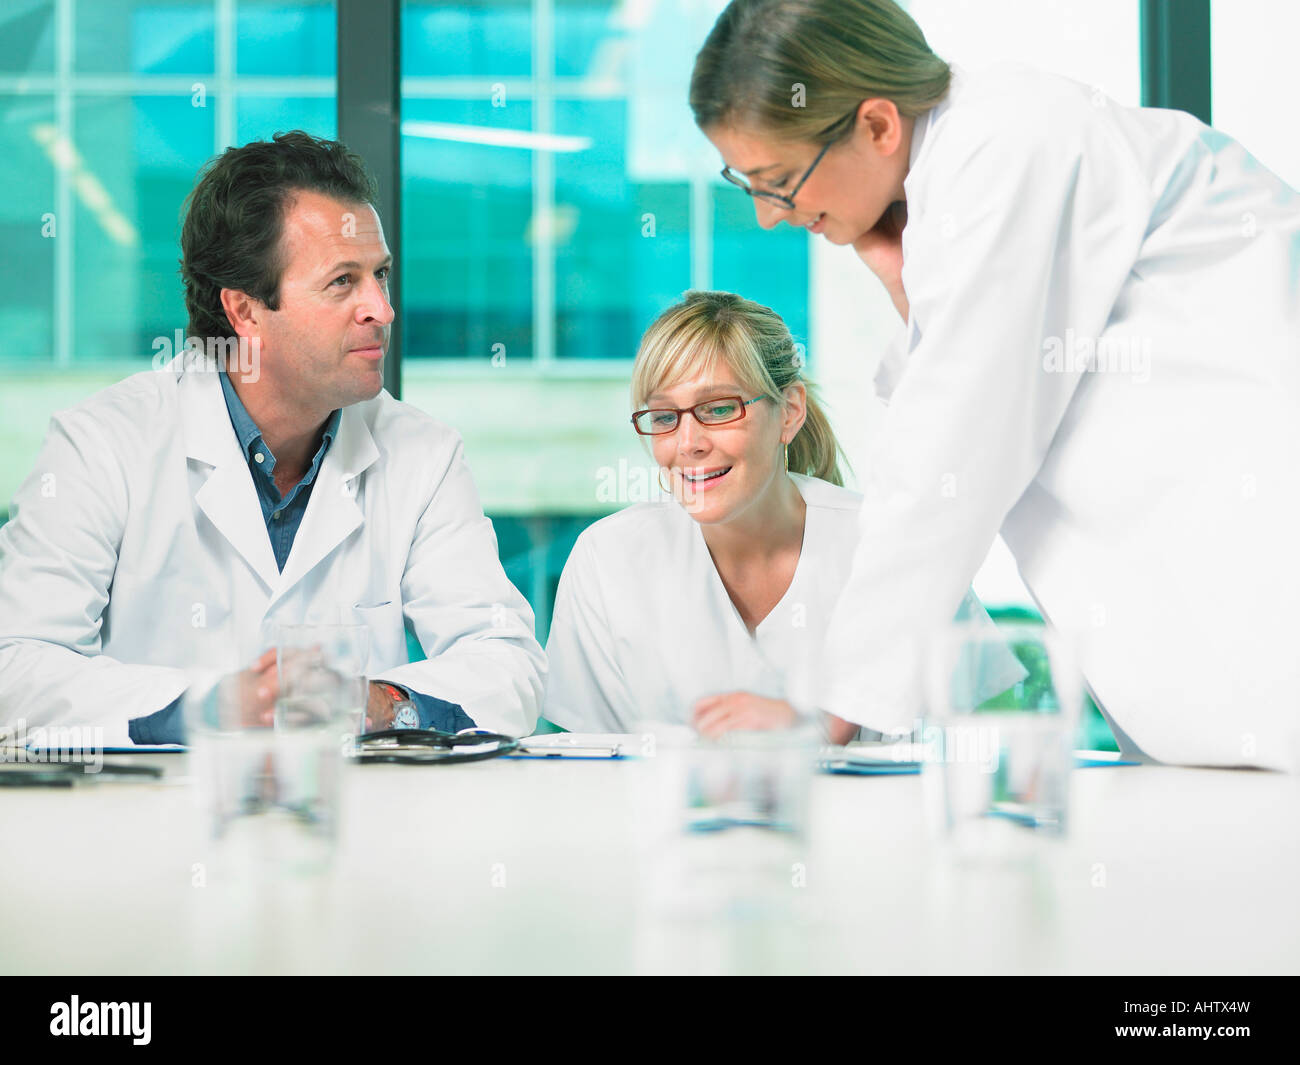 Three doctors smiling and talking in a meeting. - Stock Image